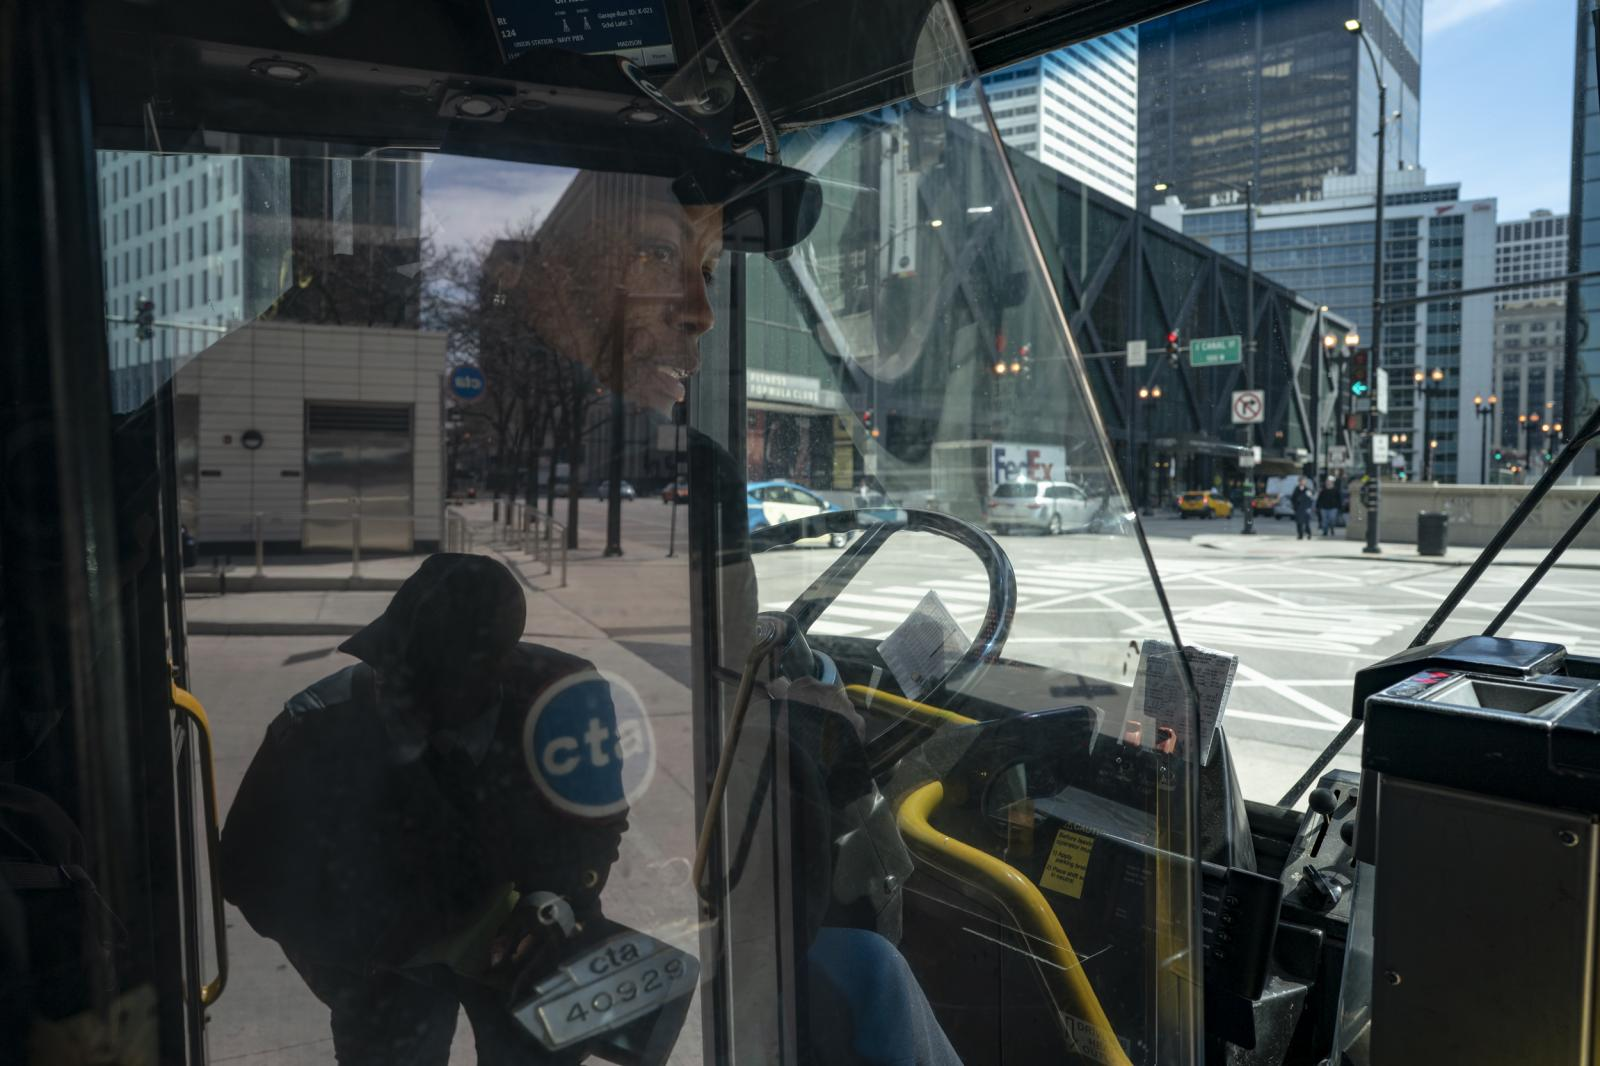 Bus driver Lorrie Lackland checks in with a Chicago Transit Authority agent before driving the 124 bus in Chicago, Illinois on April 25, 2019. Lackland has driven buses in Chicago for 14 years.